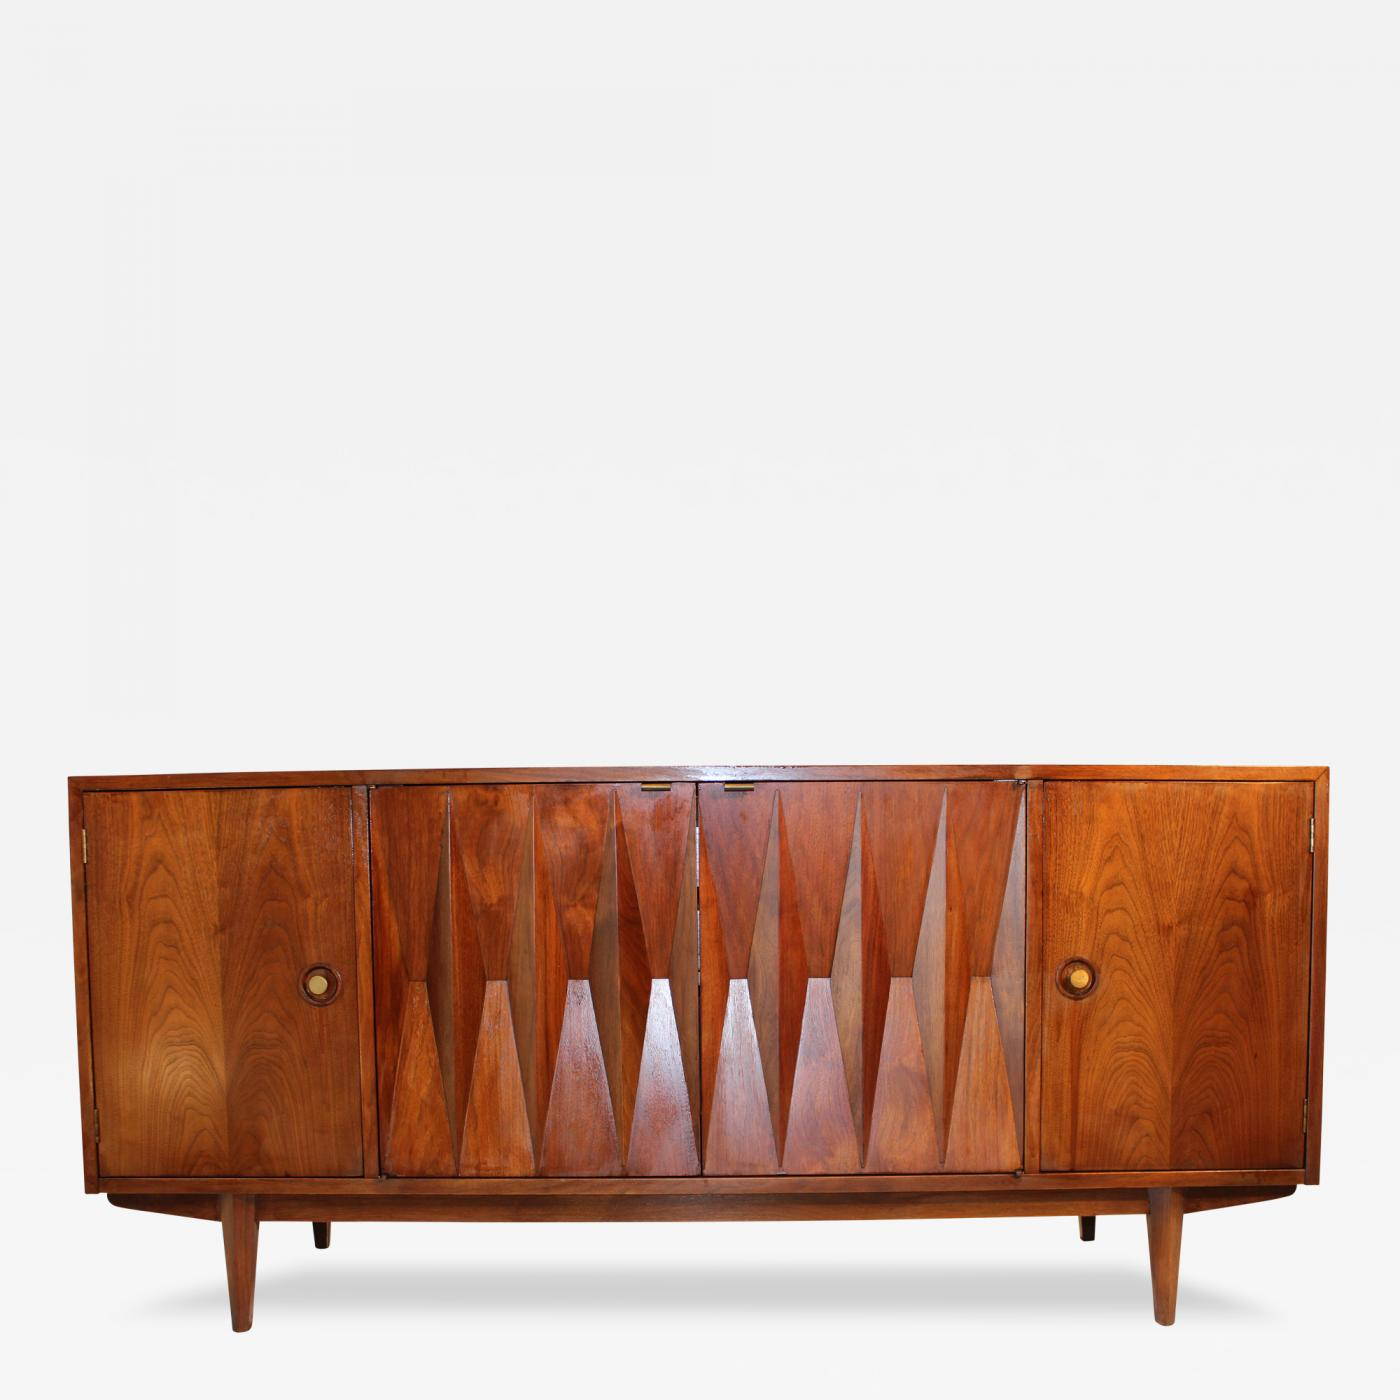 American of Martinsville - Mid Century Danish Modern Walnut Diamond on mid century modern 9 drawer dresser, jesper credenza office storage wood, mid century wood furniture,